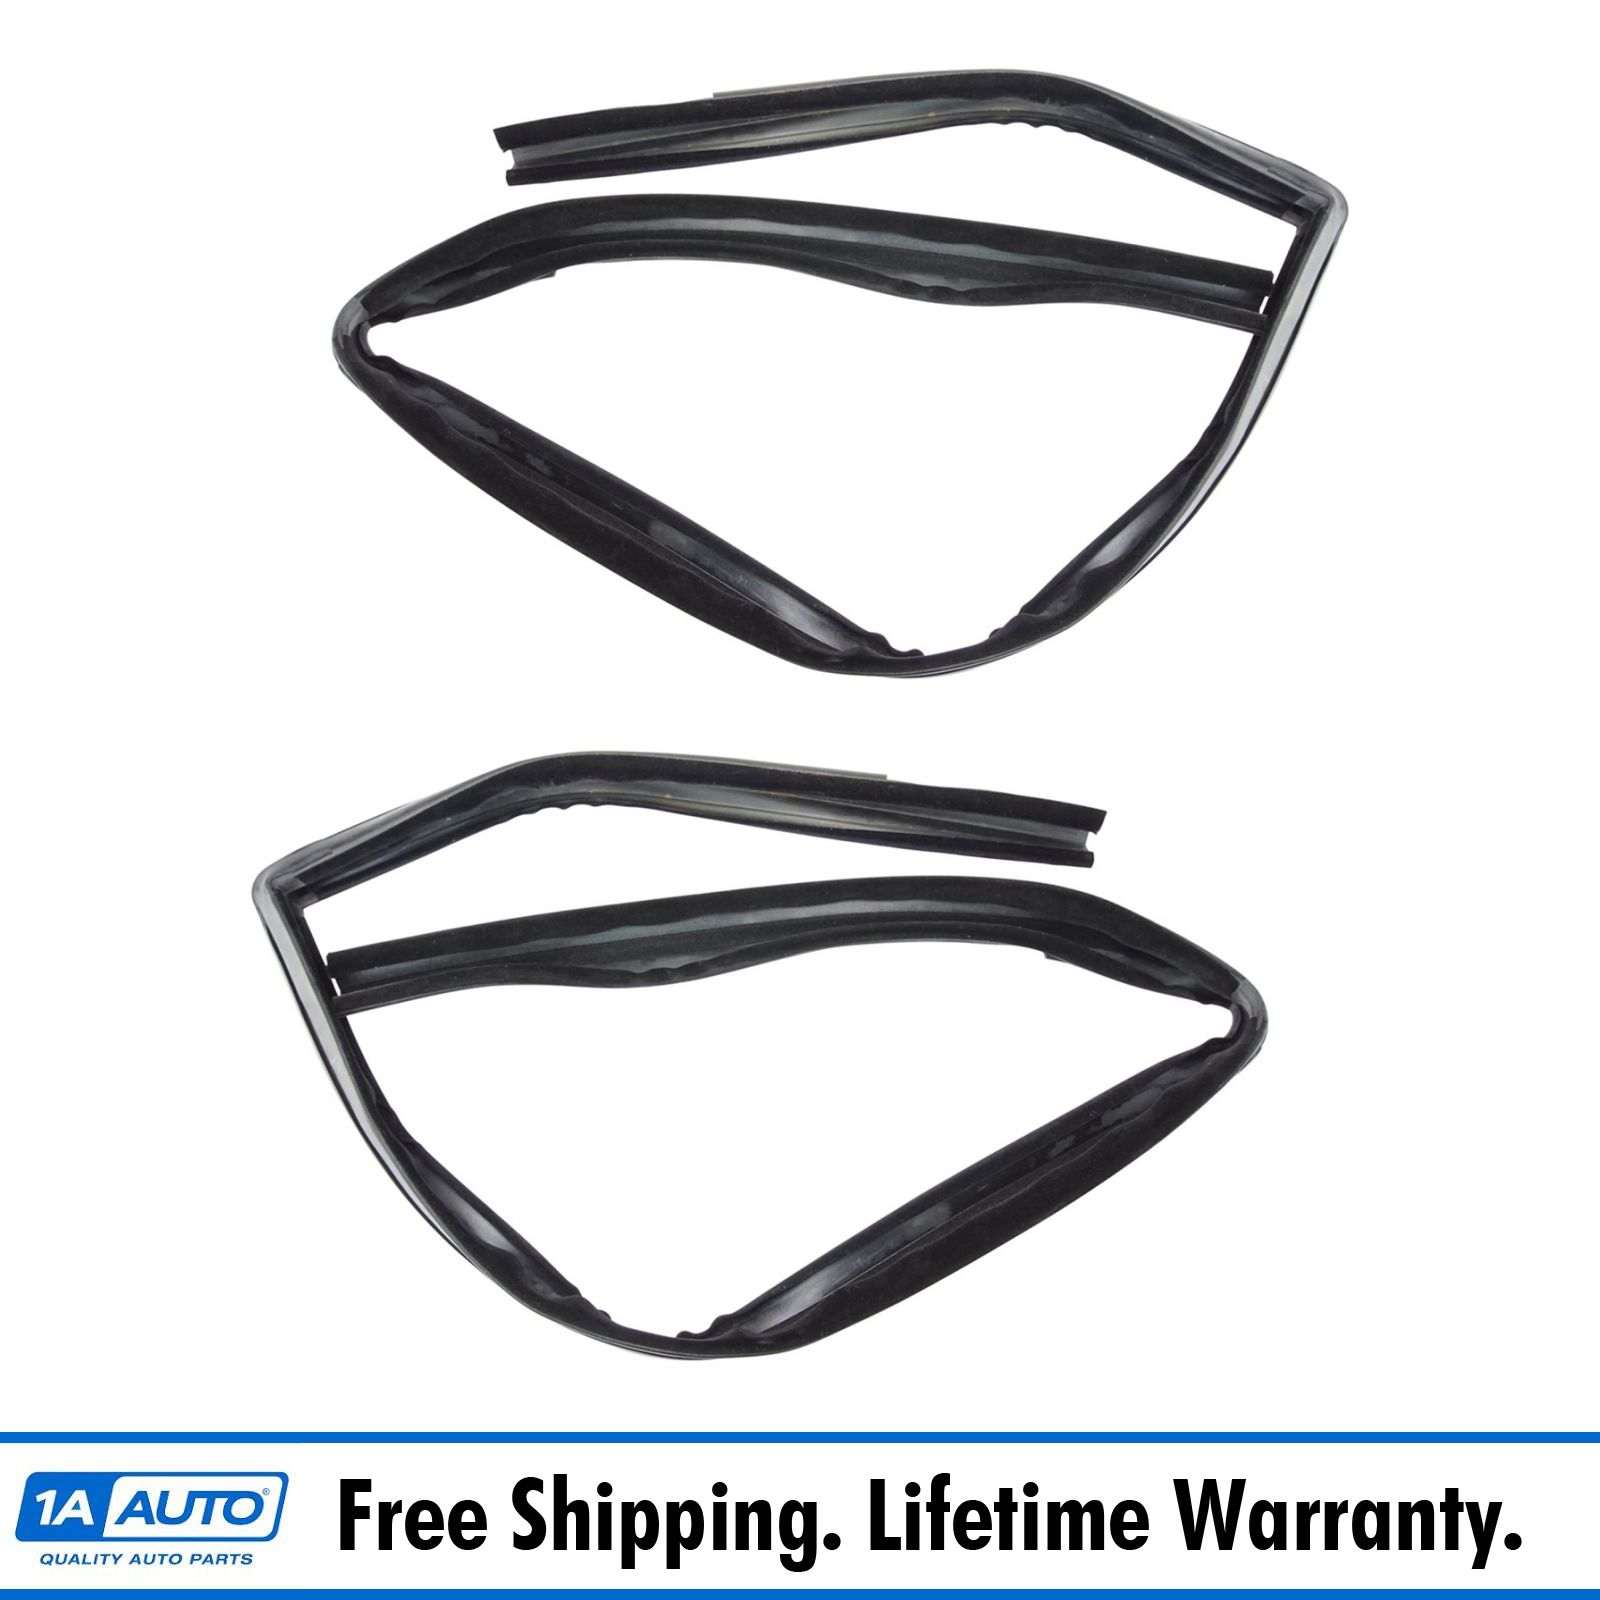 Window Glass Run Channel Weatherstrip Front LH or RH for 73-93 Ford L-Series HD